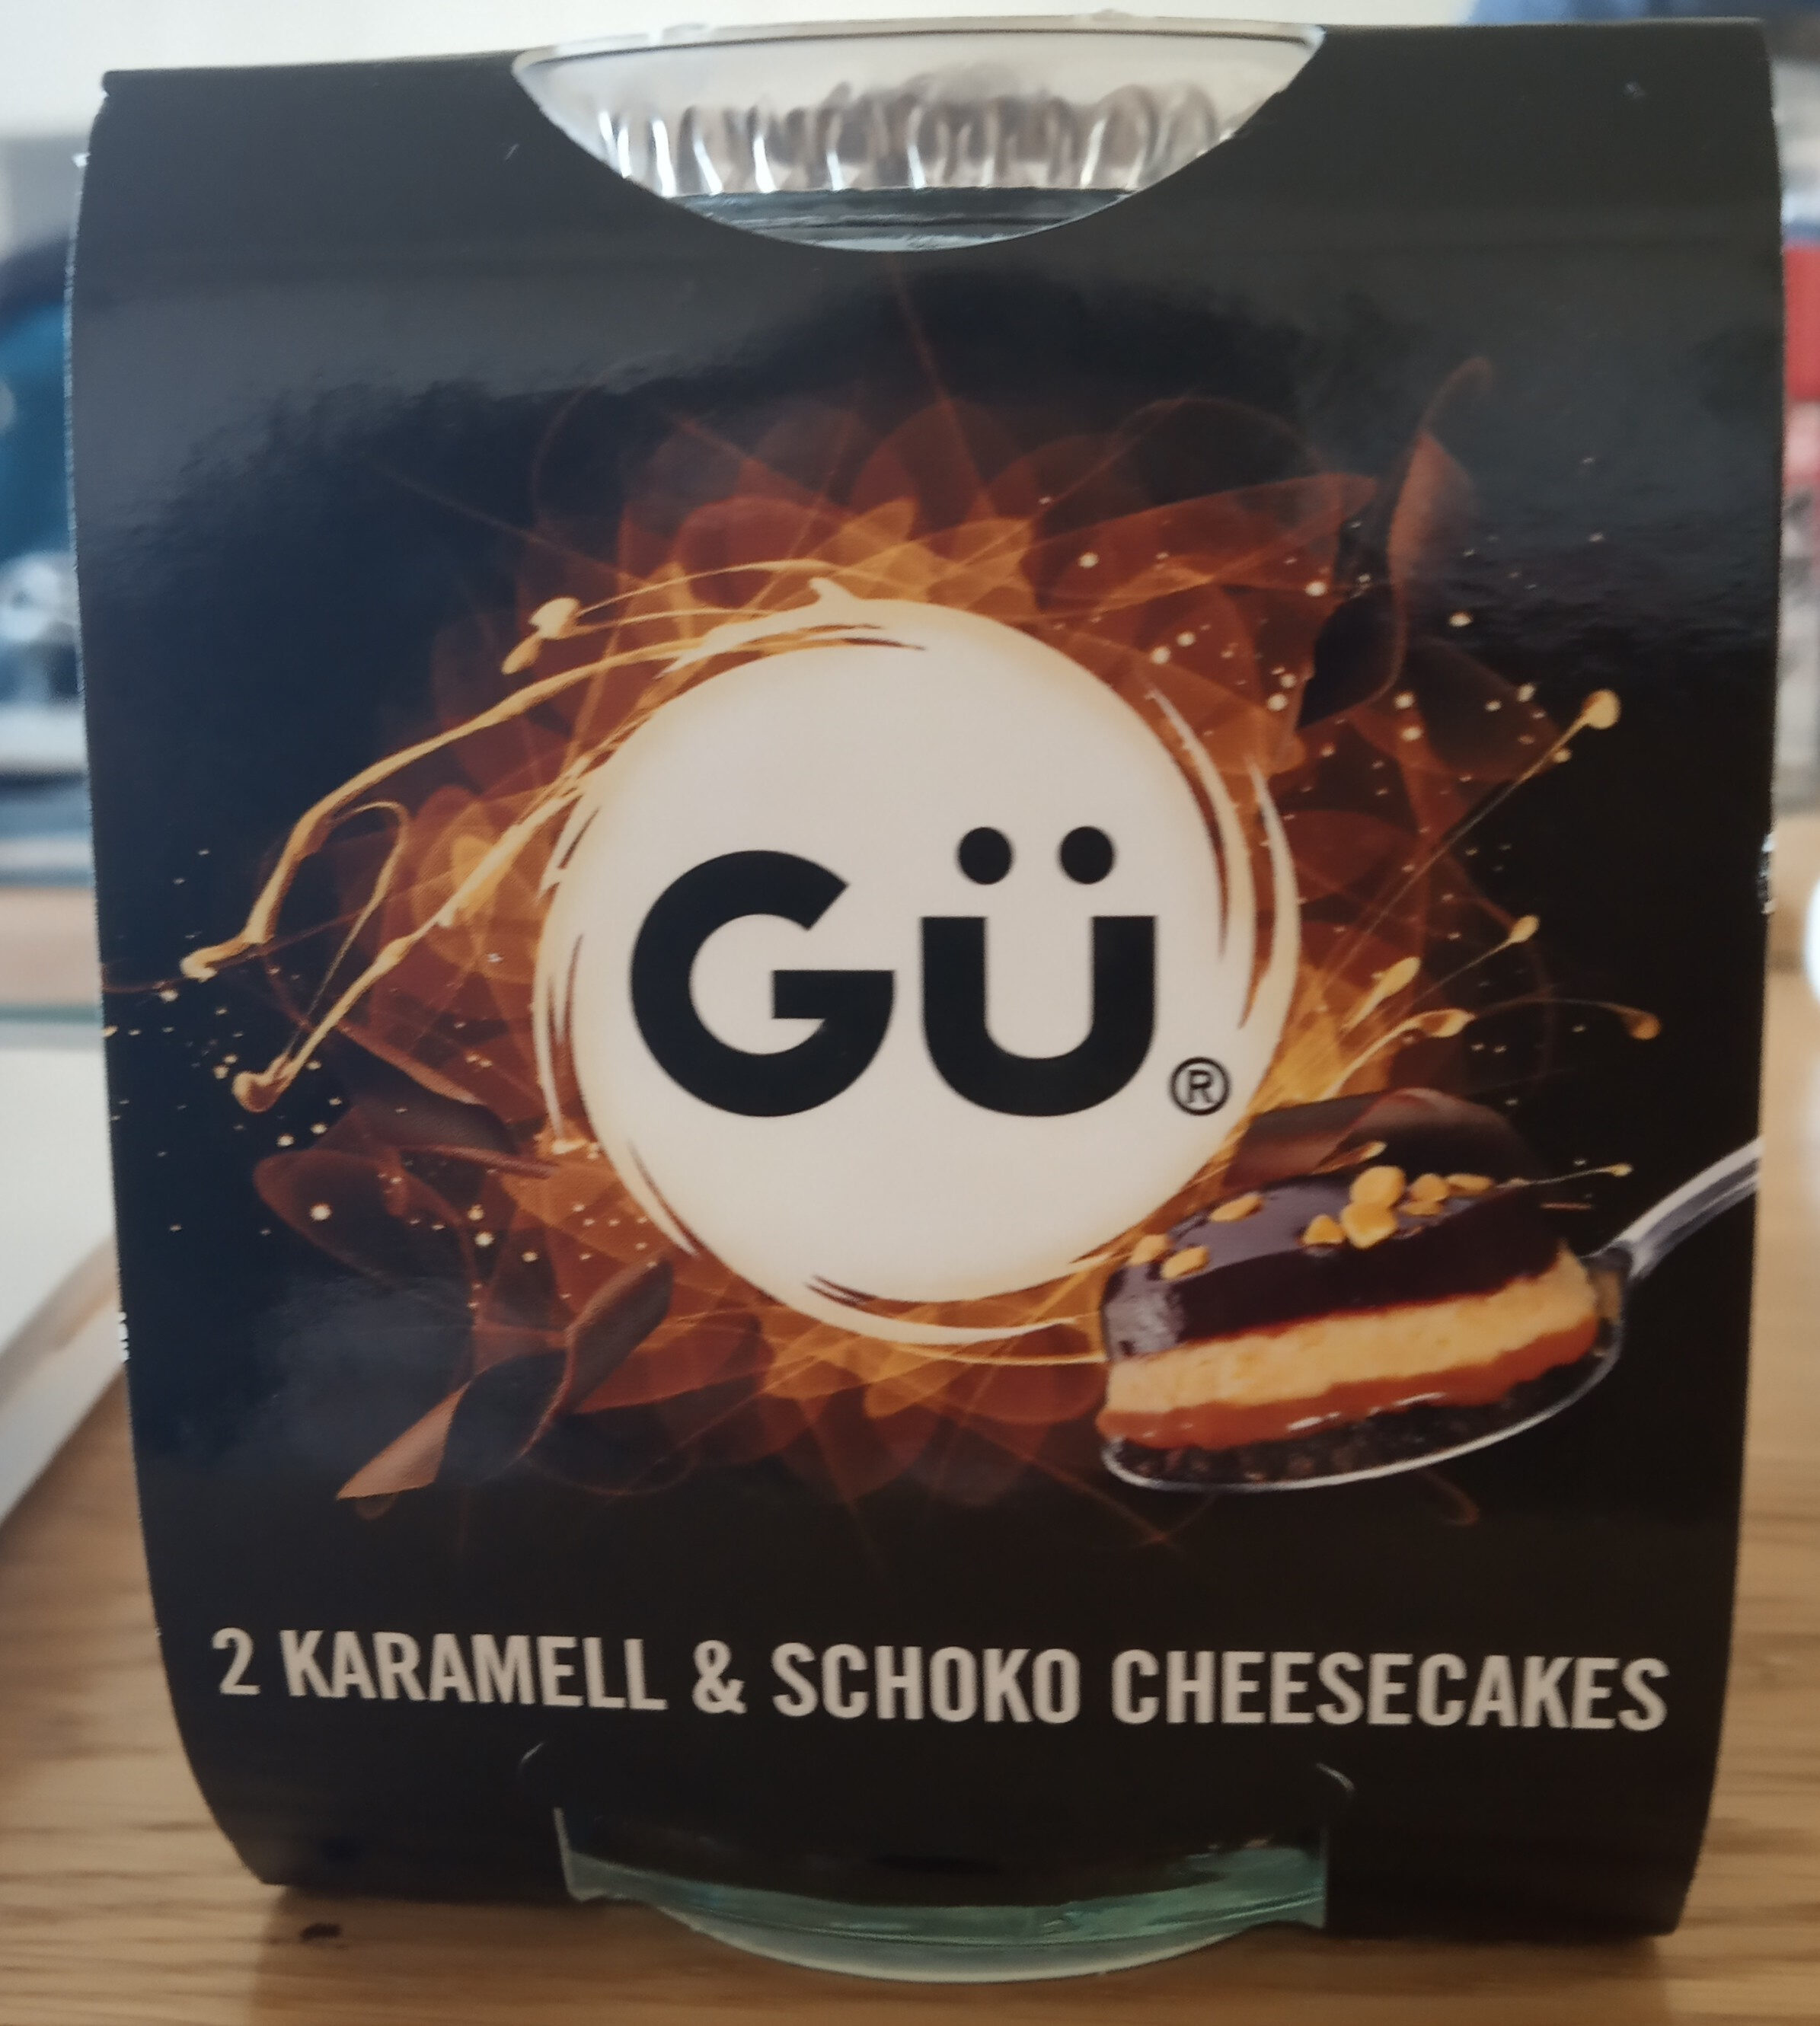 karamell & schoko cheesecakes - Product - fr